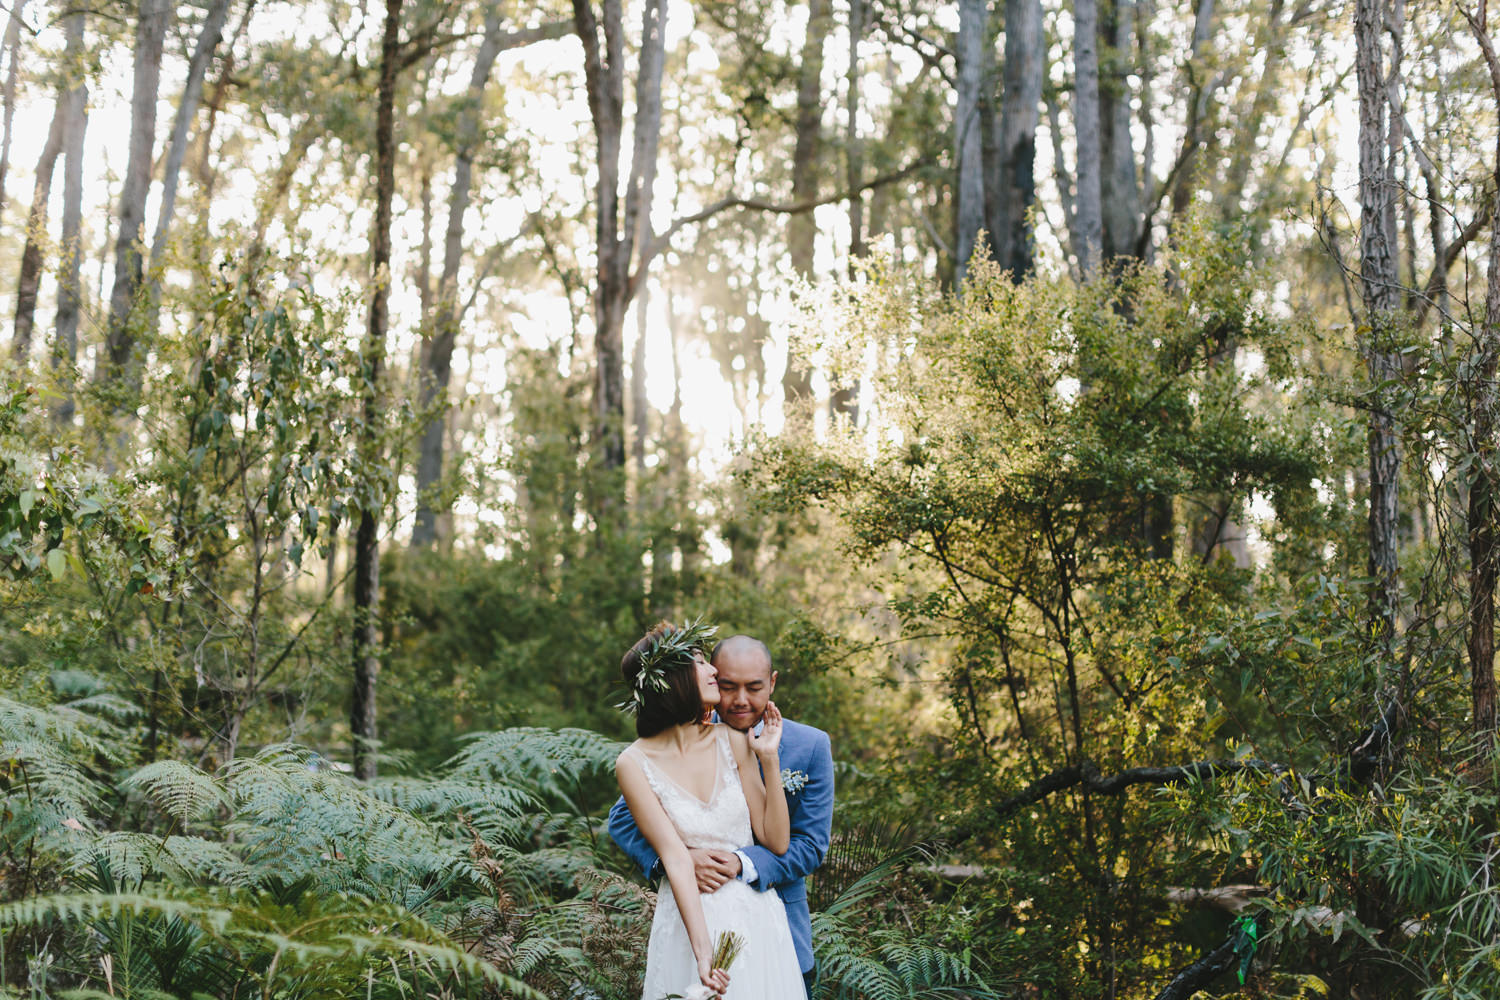 136-Barn_Wedding_Australia_Sam_Ting.jpg